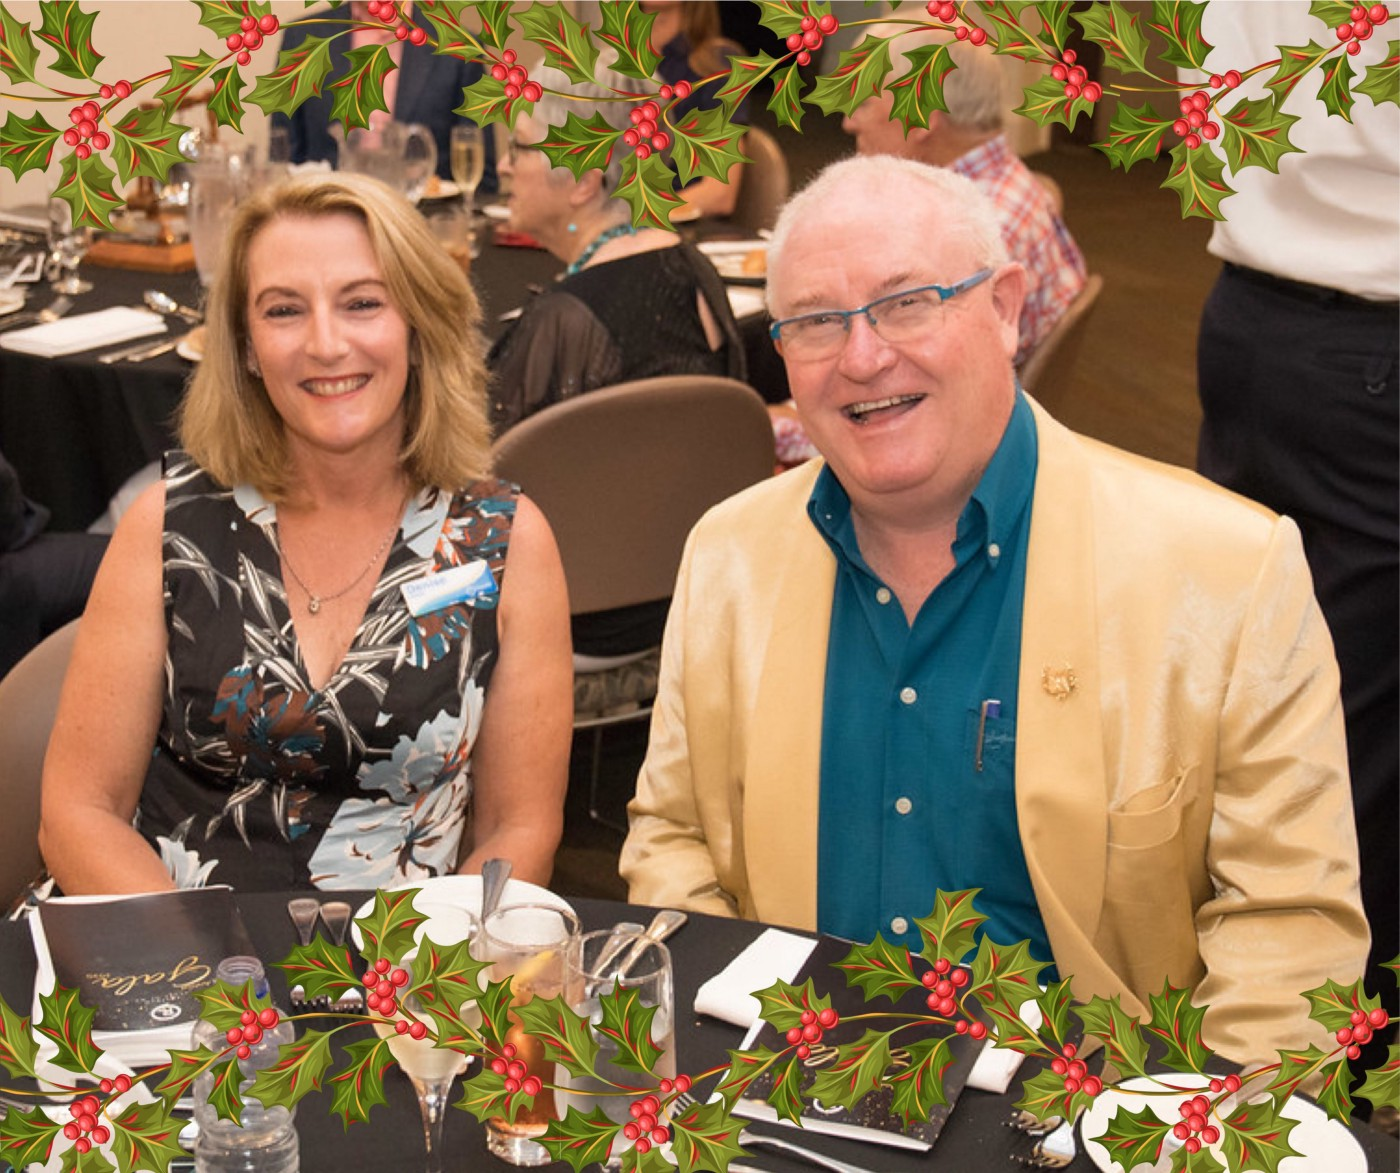 Denise and David Price at Rostrum Speaker of the Year Gala Event 2020